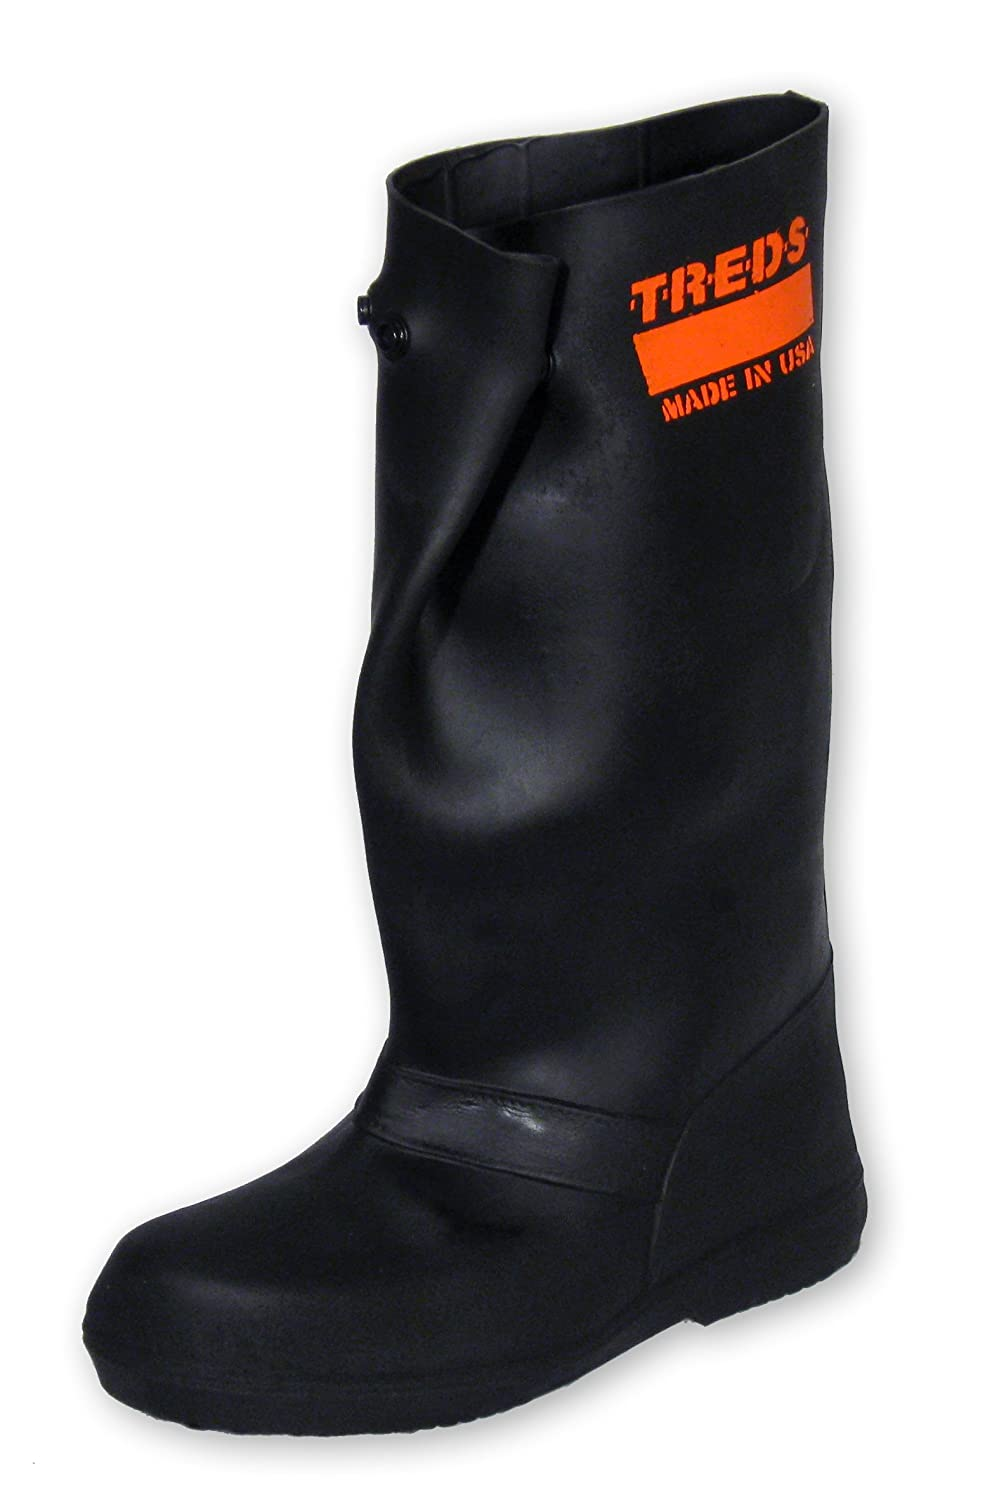 Treds 17859 TREDS Super Tough 17 Pull-On Stretch Rubber Overboots for Rain, Slush, Snow and Construction, Size X-Small